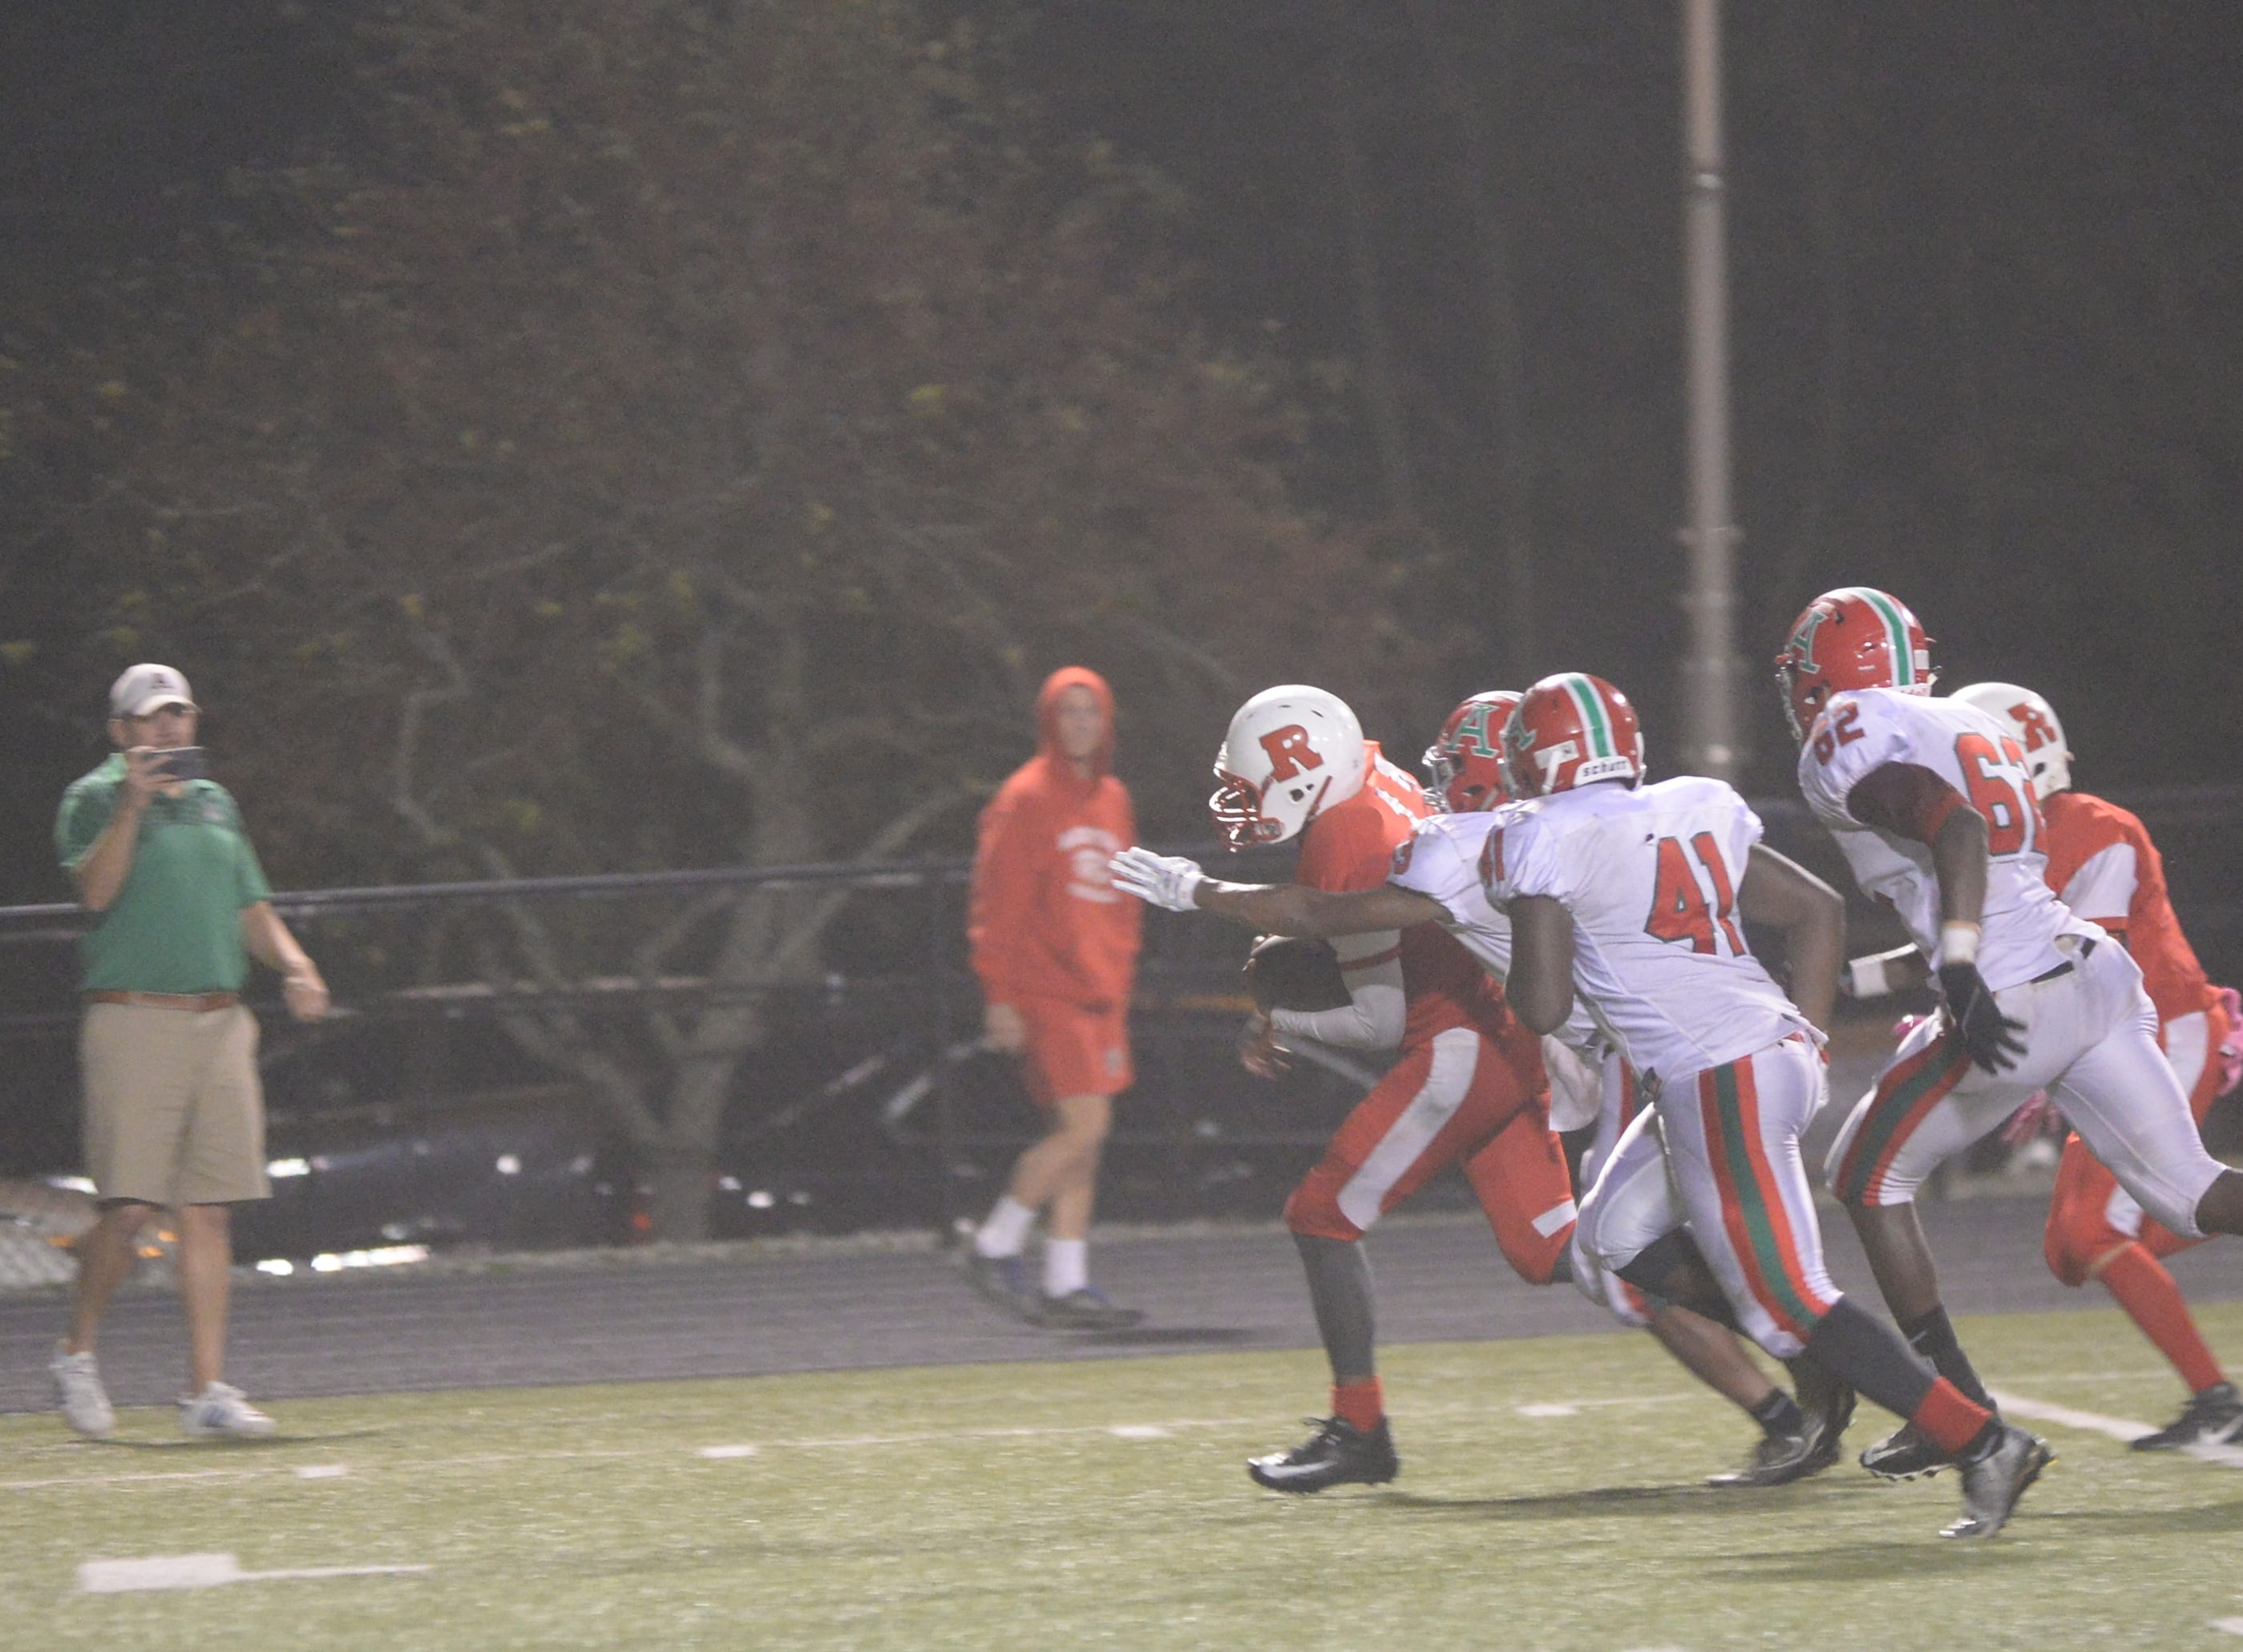 The Richmond High School football team fell  27-26 to Anderson Friday, Oct. 5, 2018 at Lyboult Field.